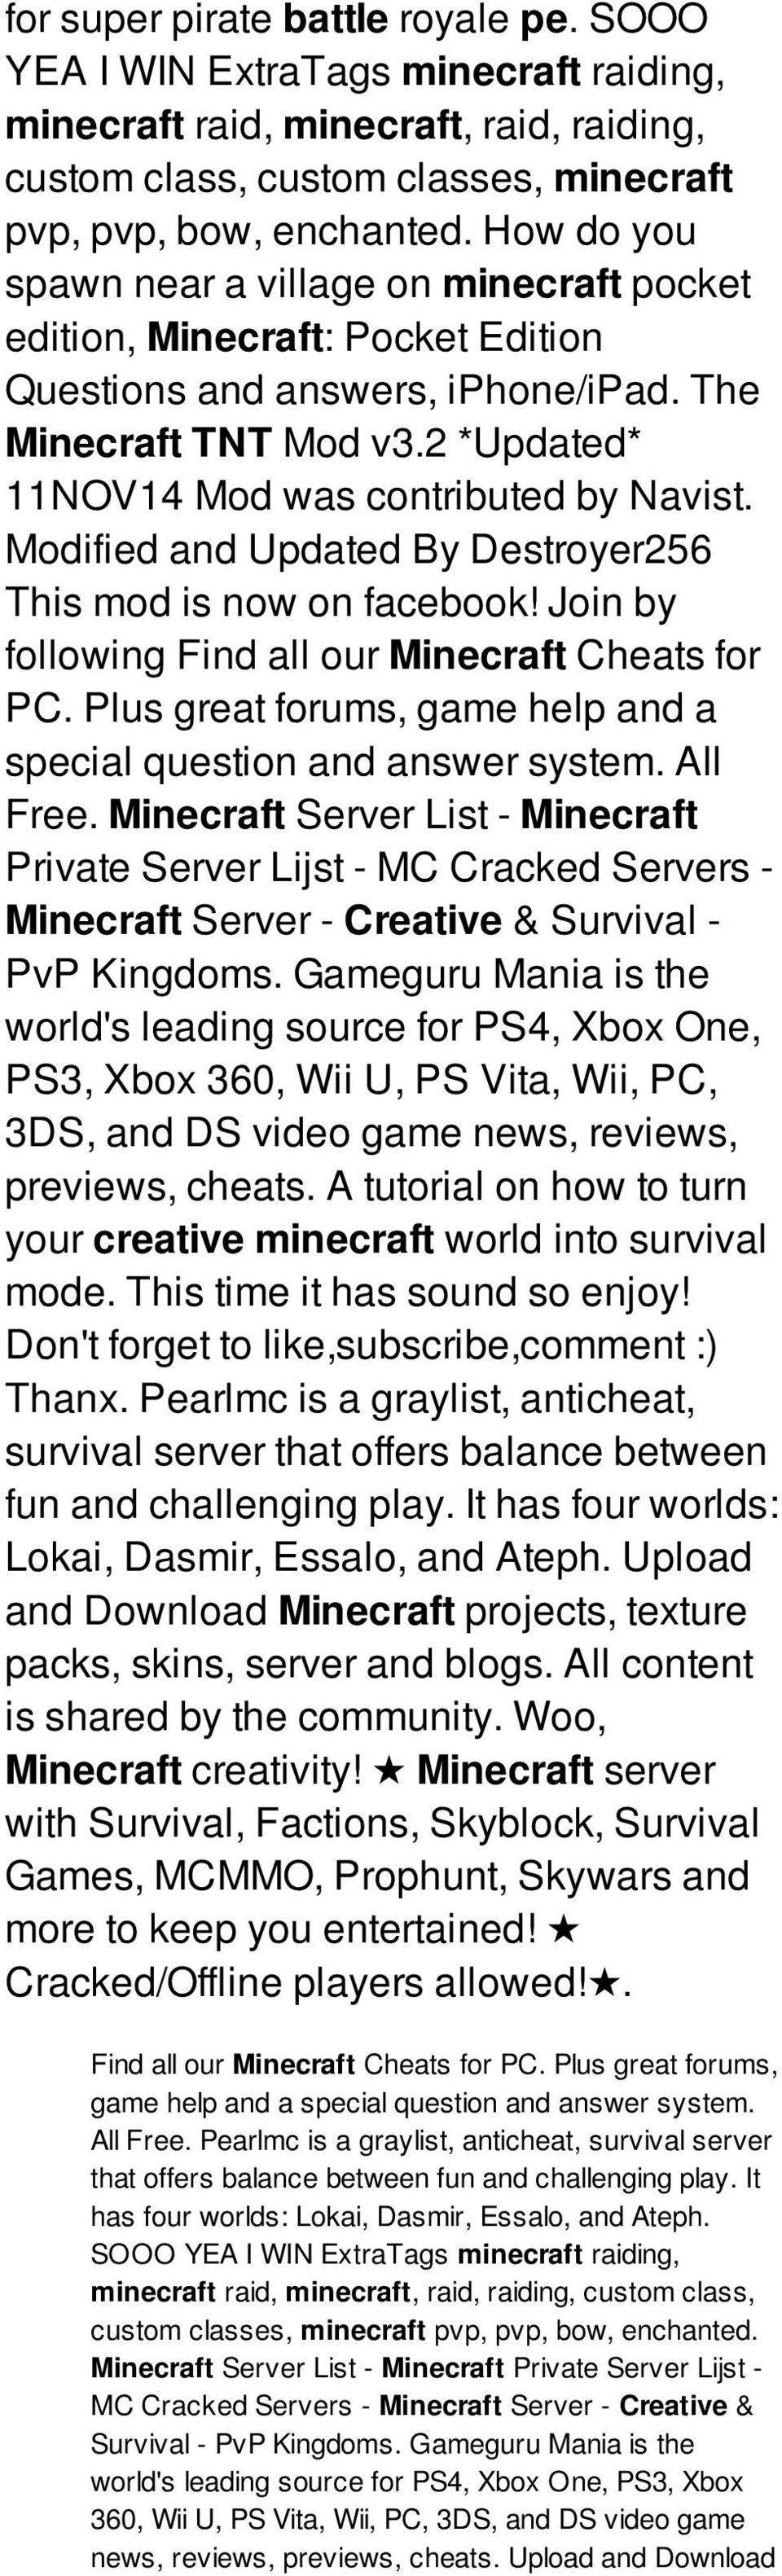 Modified and Updated By Destroyer256 This mod is now on facebook! Join by following Find all our Minecraft Cheats for PC. Plus great forums, game help and a special question and answer system.